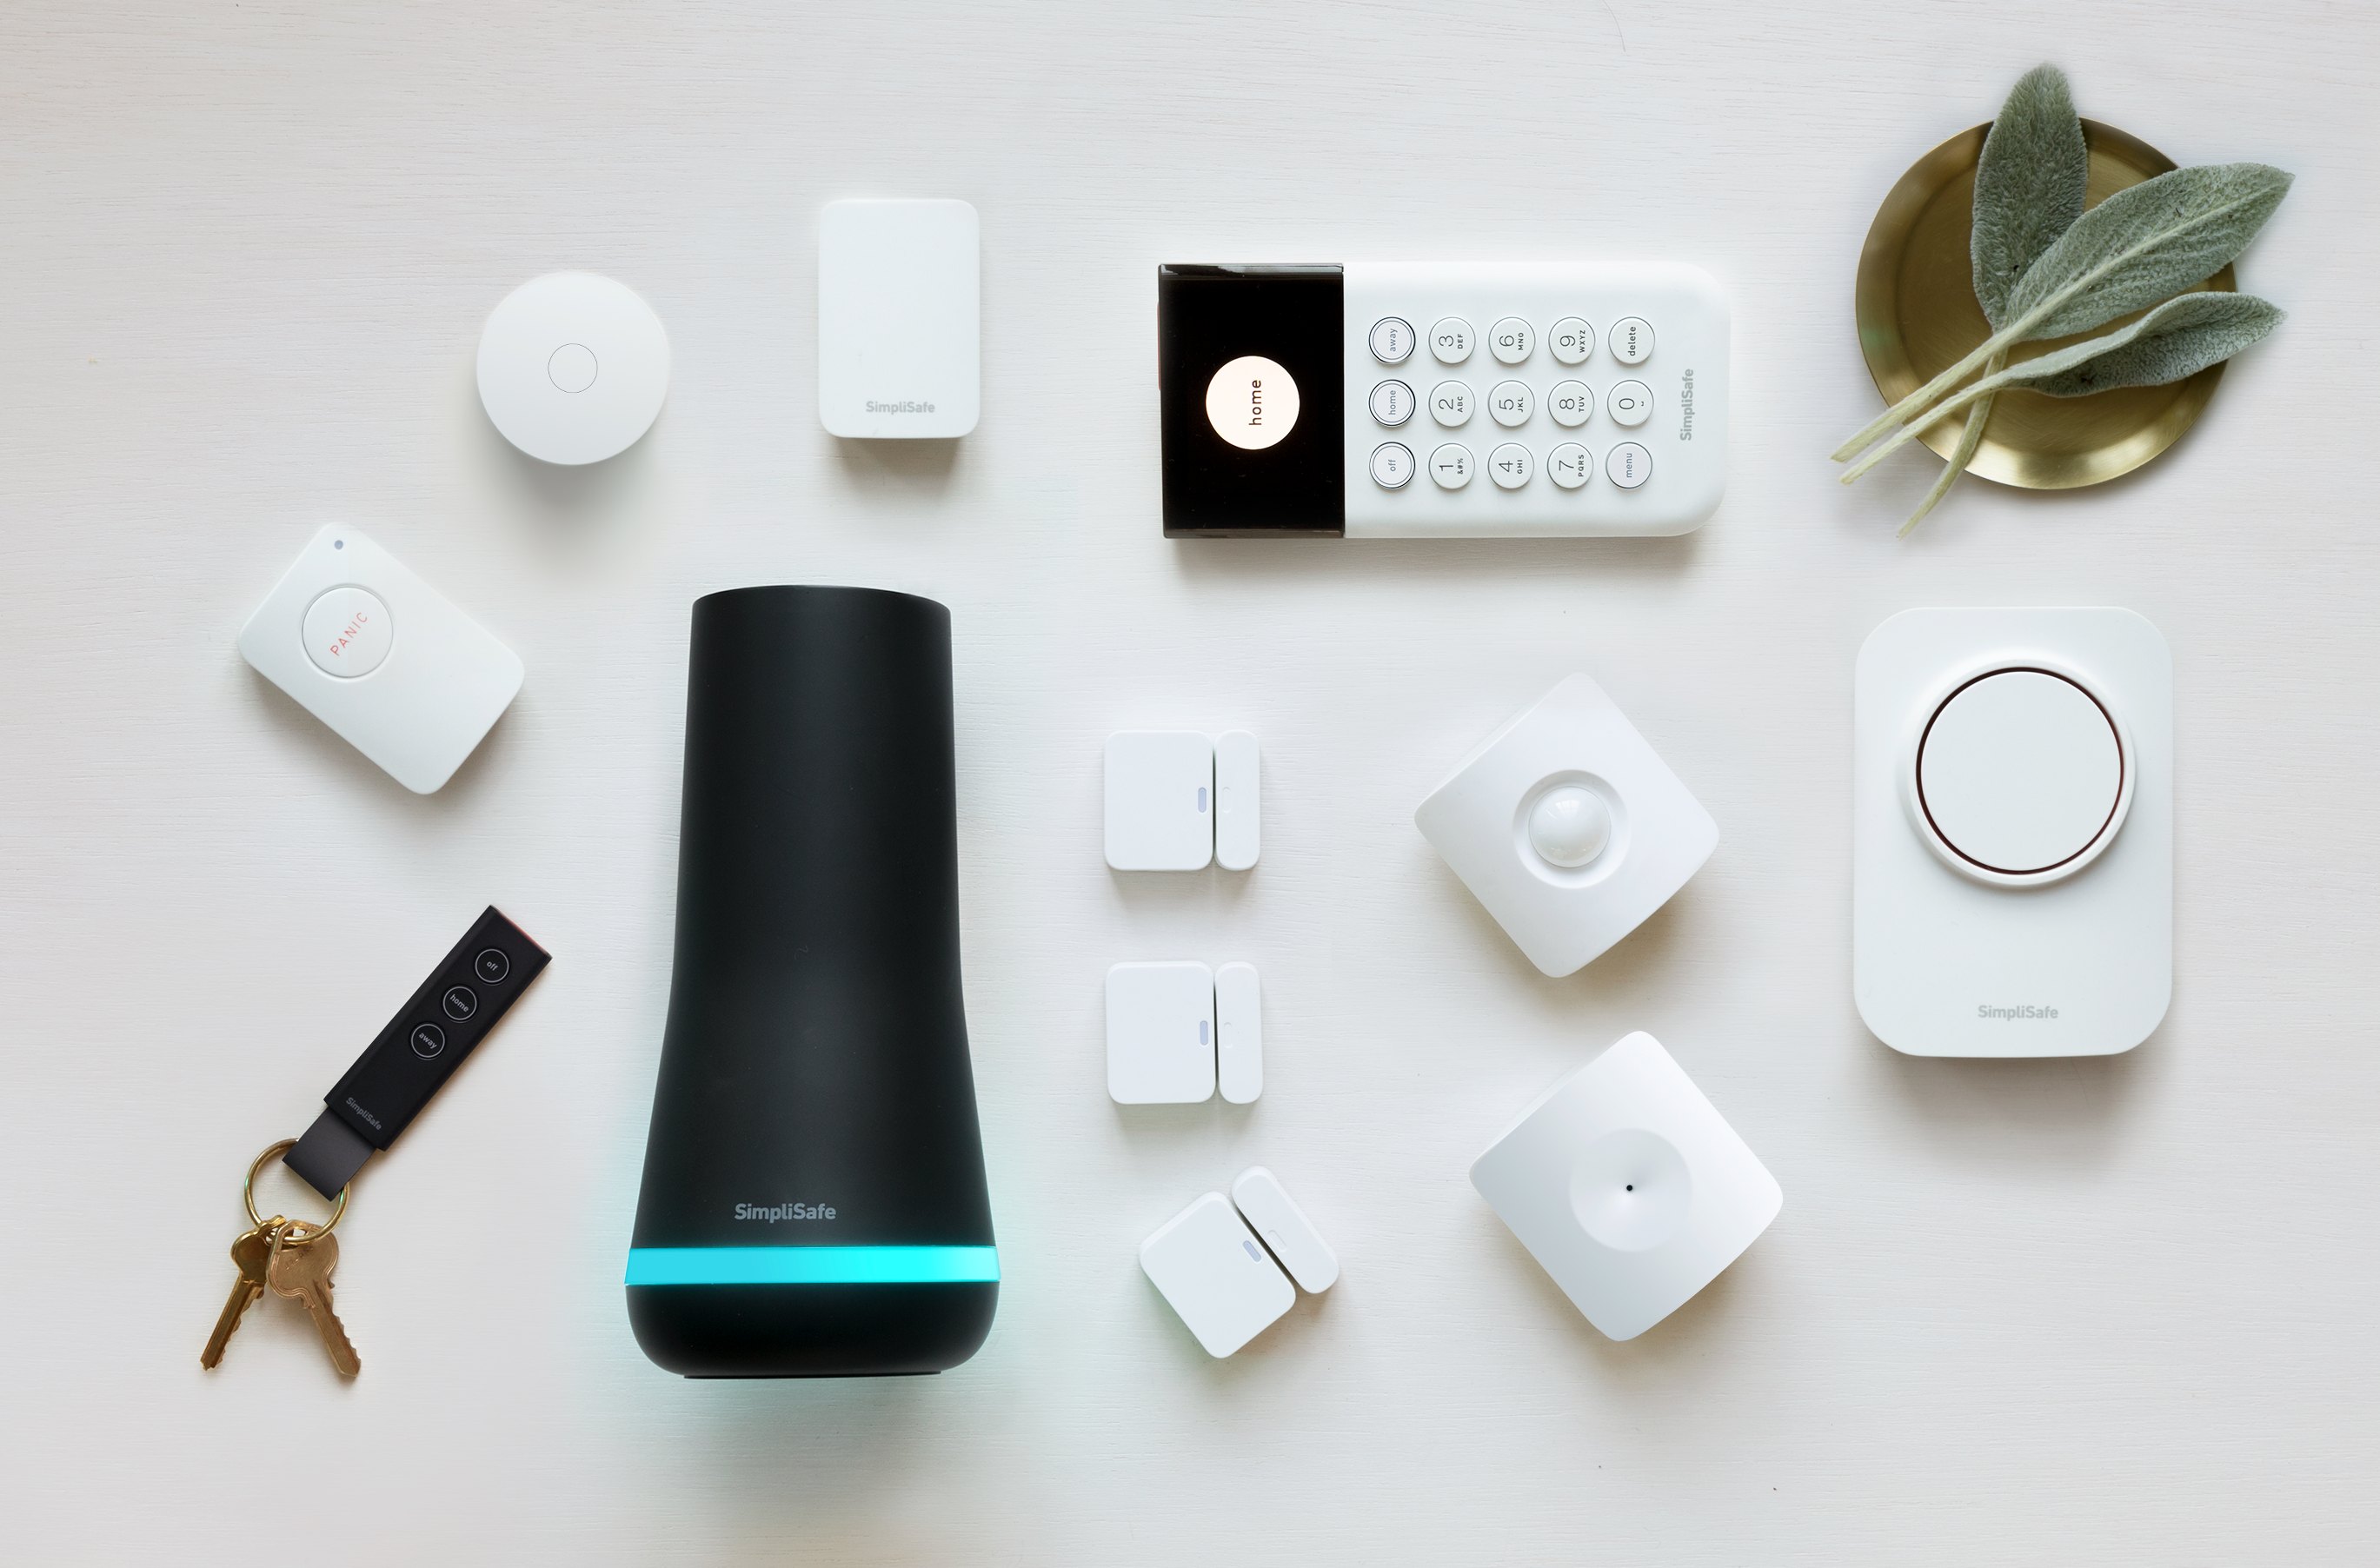 SimpliSafe system and equipment